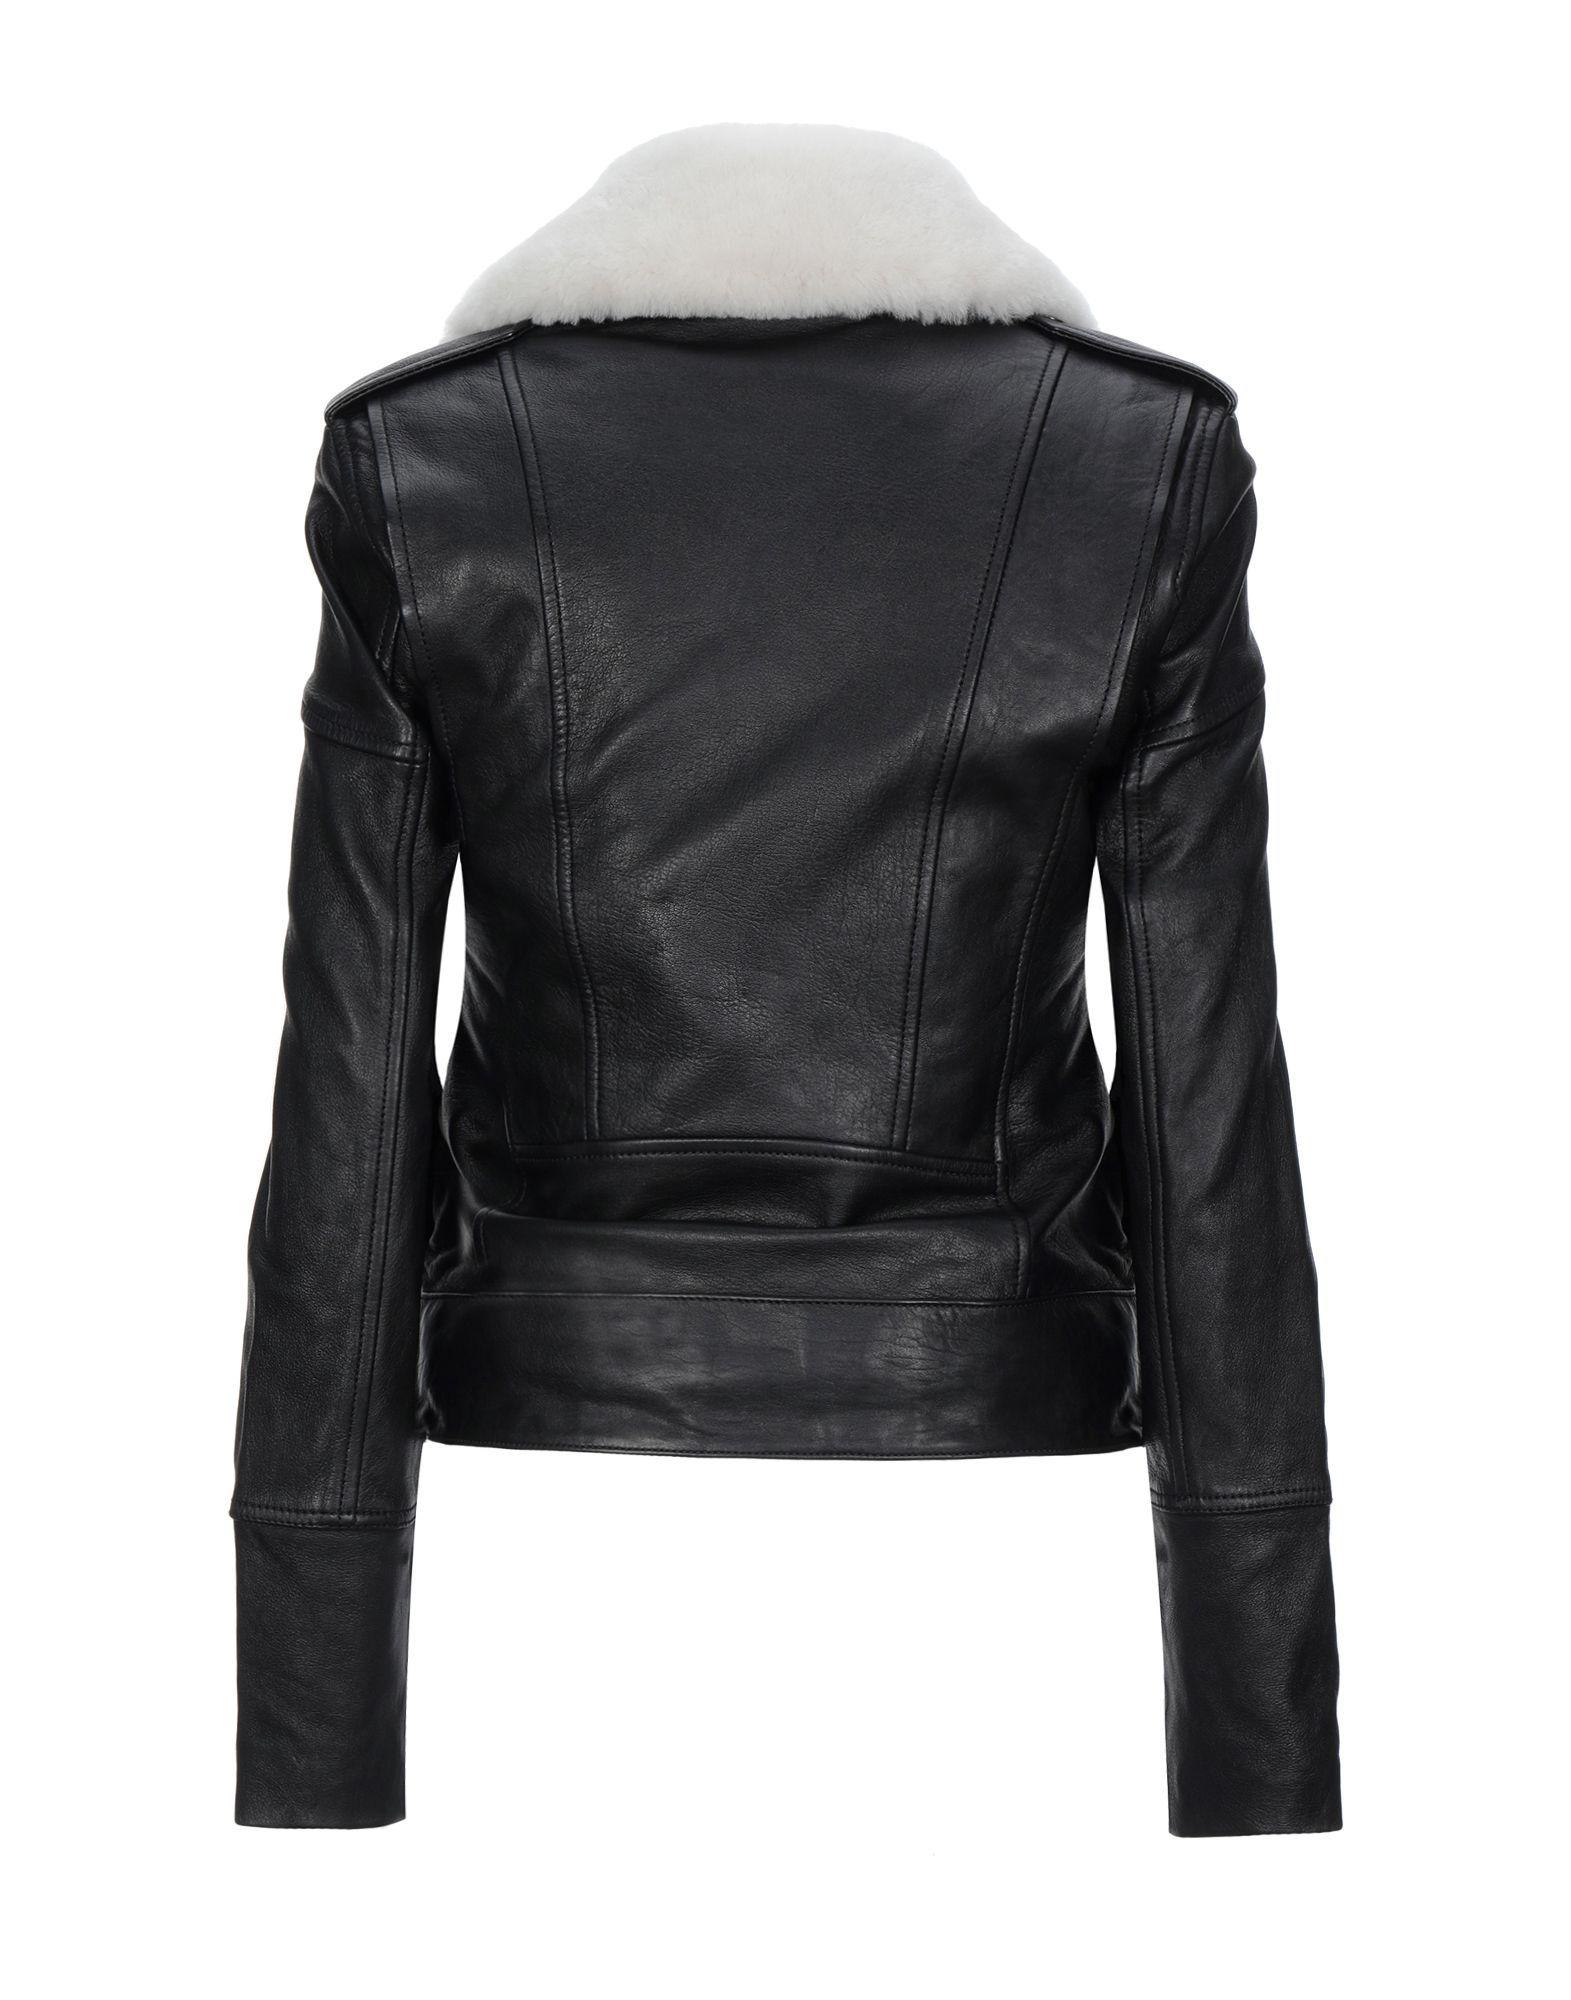 Victoria, Victoria Beckham Black Nappa Leather Jacket